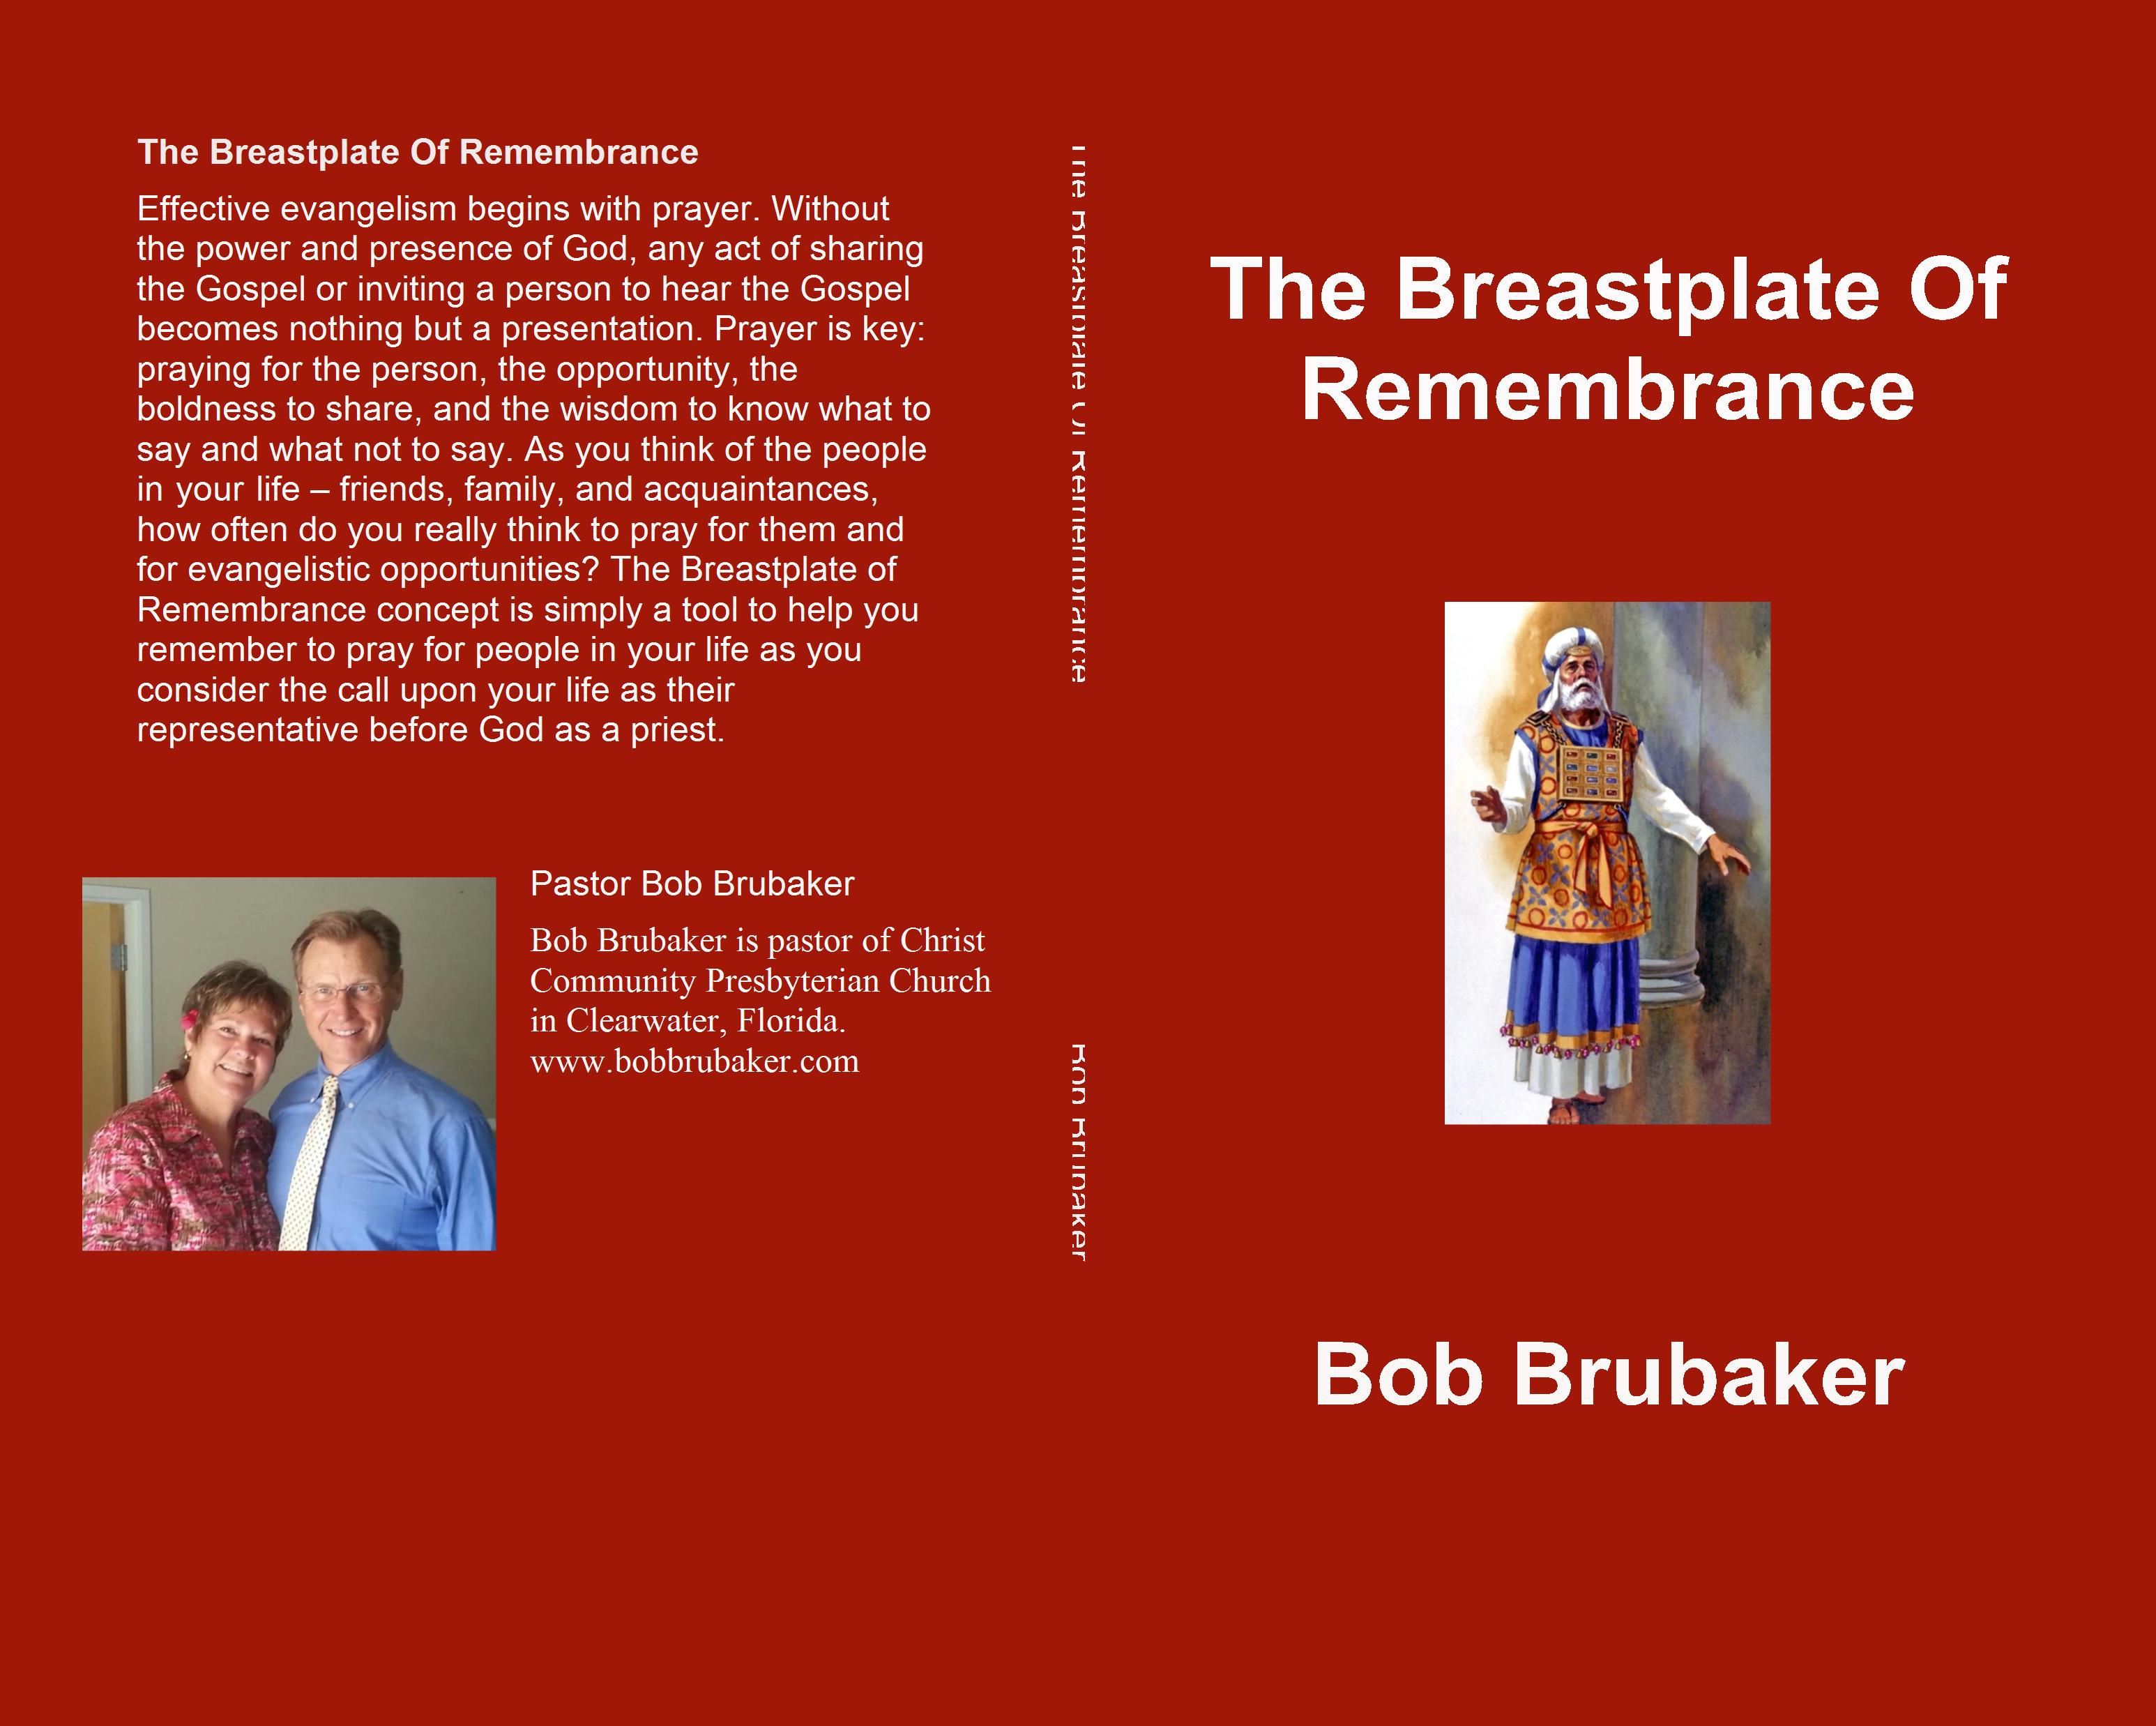 The Breastplate Of Remembrance cover image